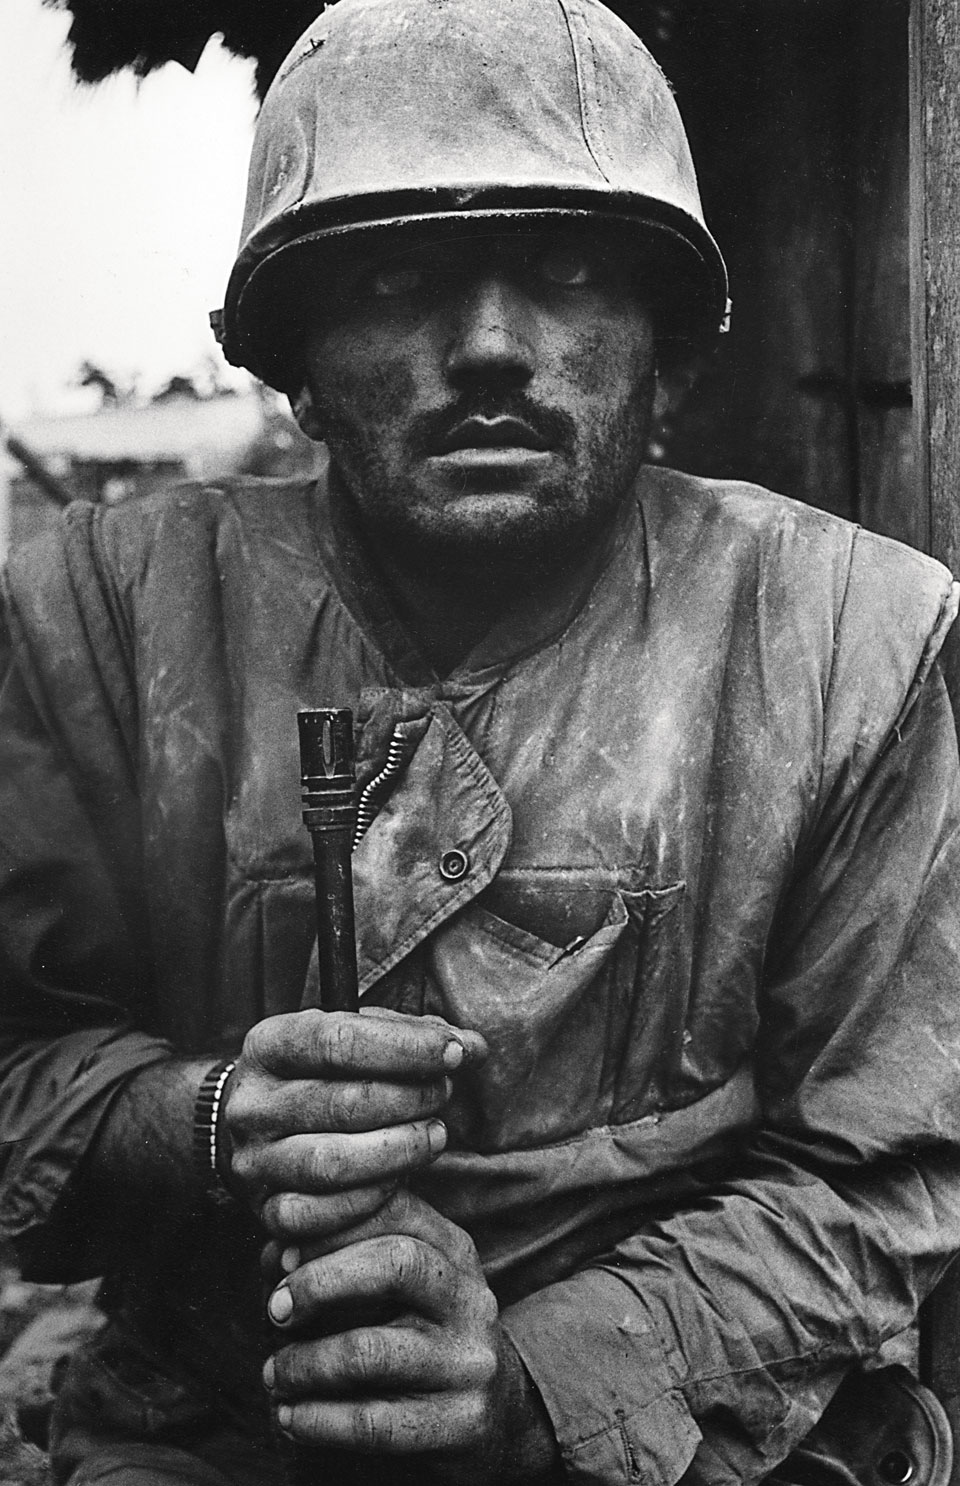 war photographer War photographer is a documentary by christian frei about the photographer james nachtwey as well as telling the story of an iconic man in the field of war.